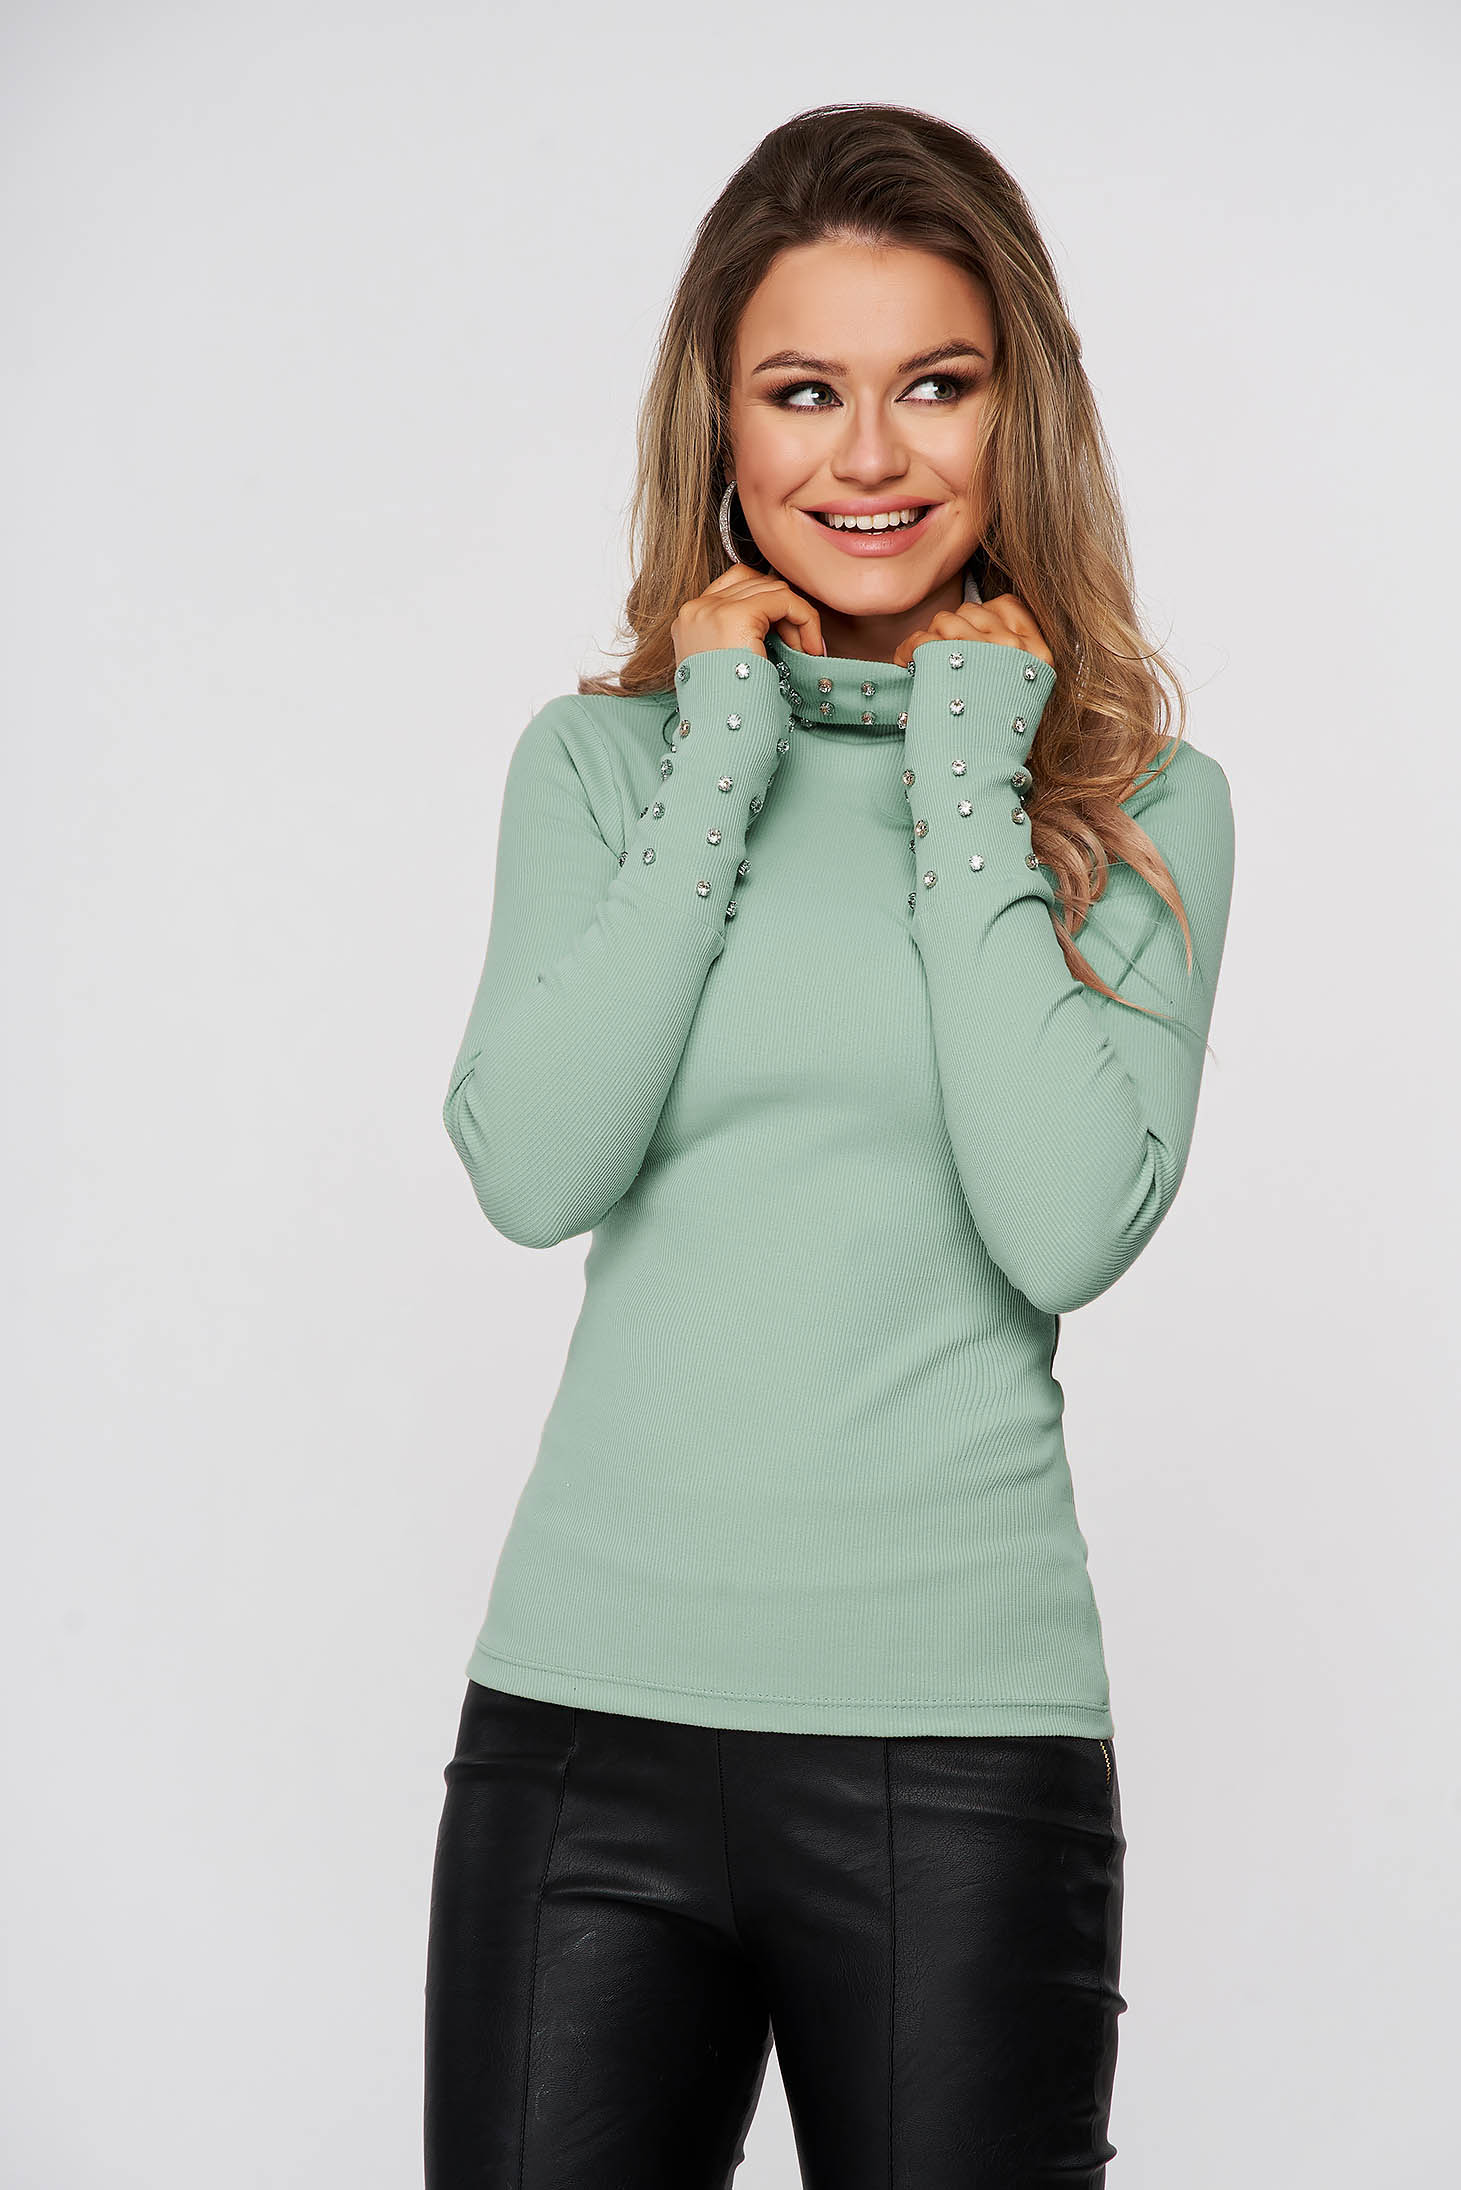 Green women`s blouse cotton from striped fabric with crystal embellished details